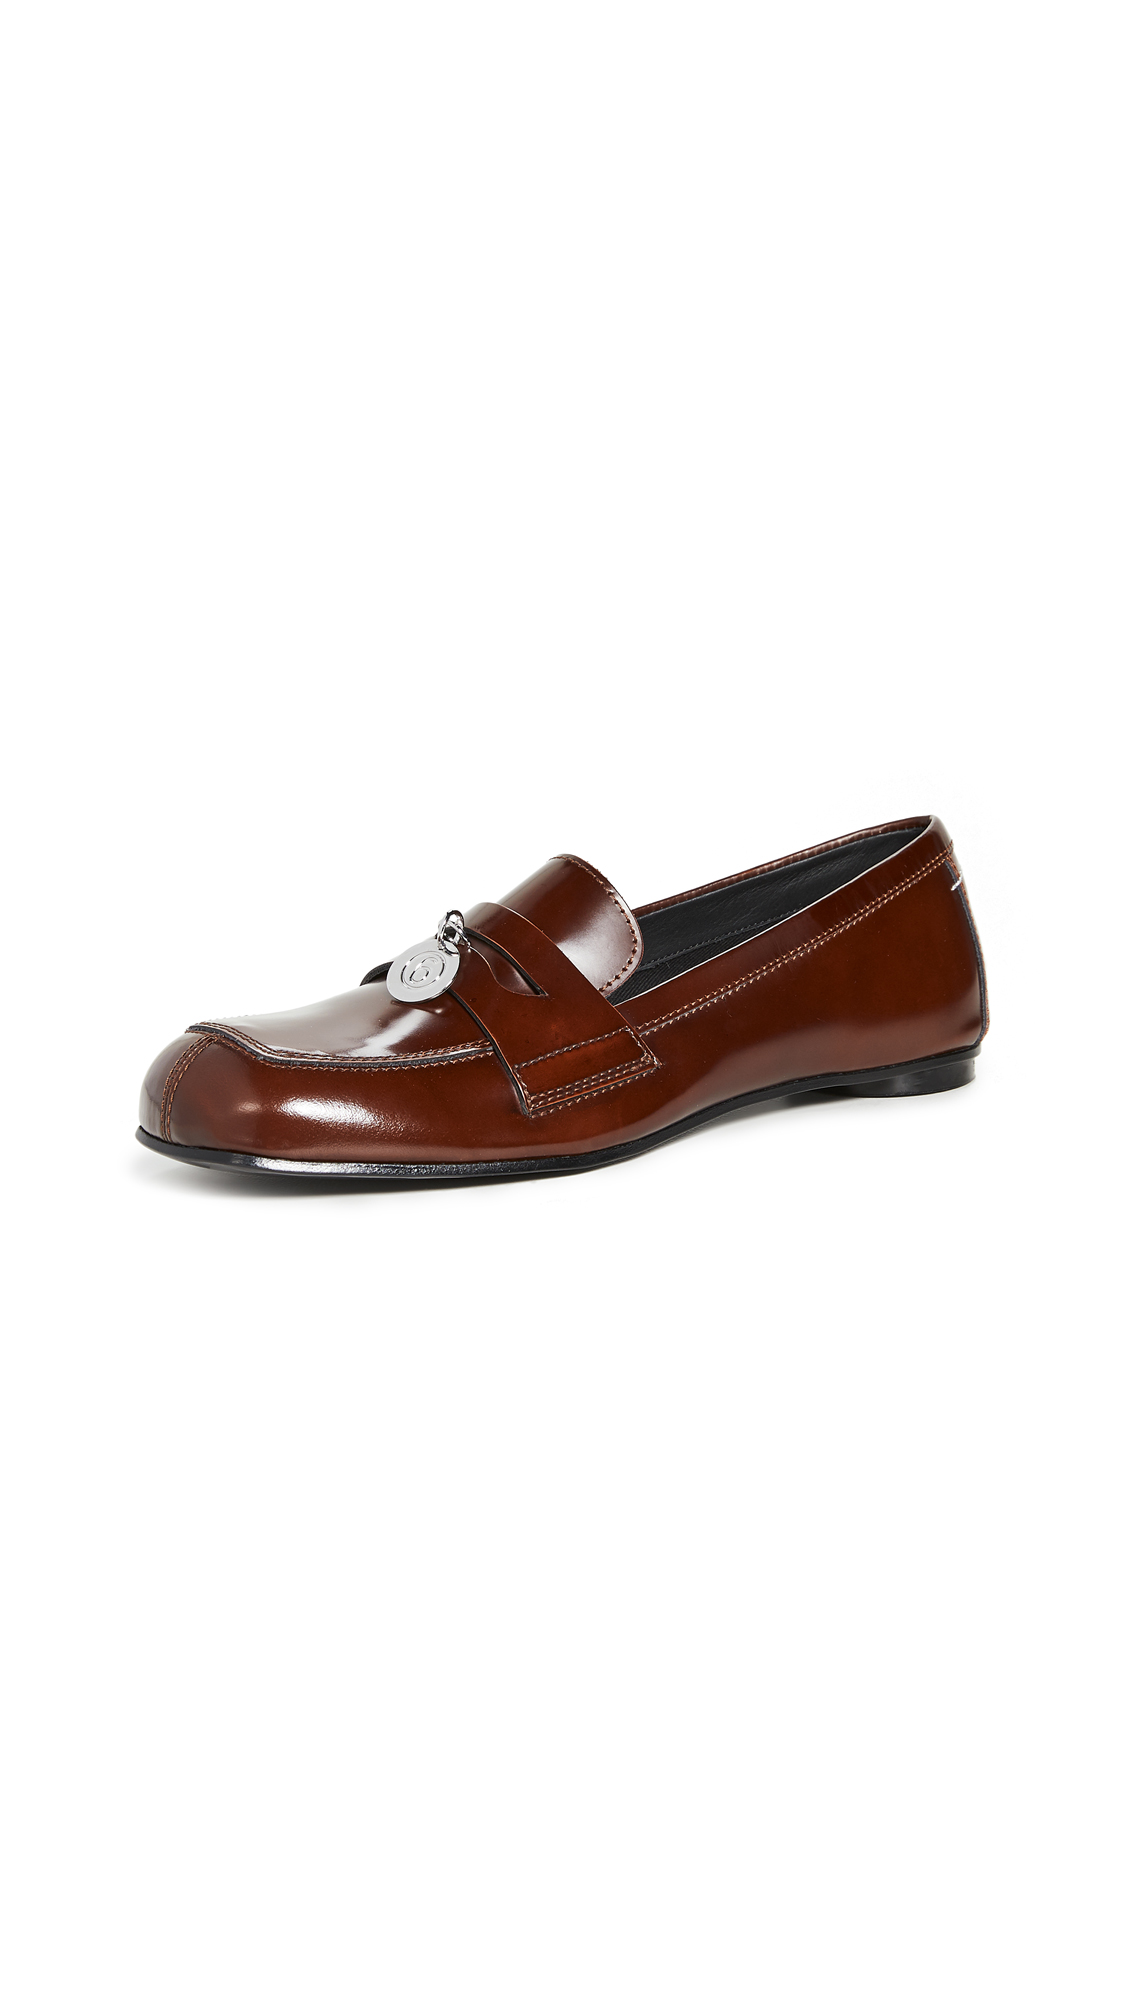 MM6 Maison Margiela Chain Loafers - 40% Off Sale